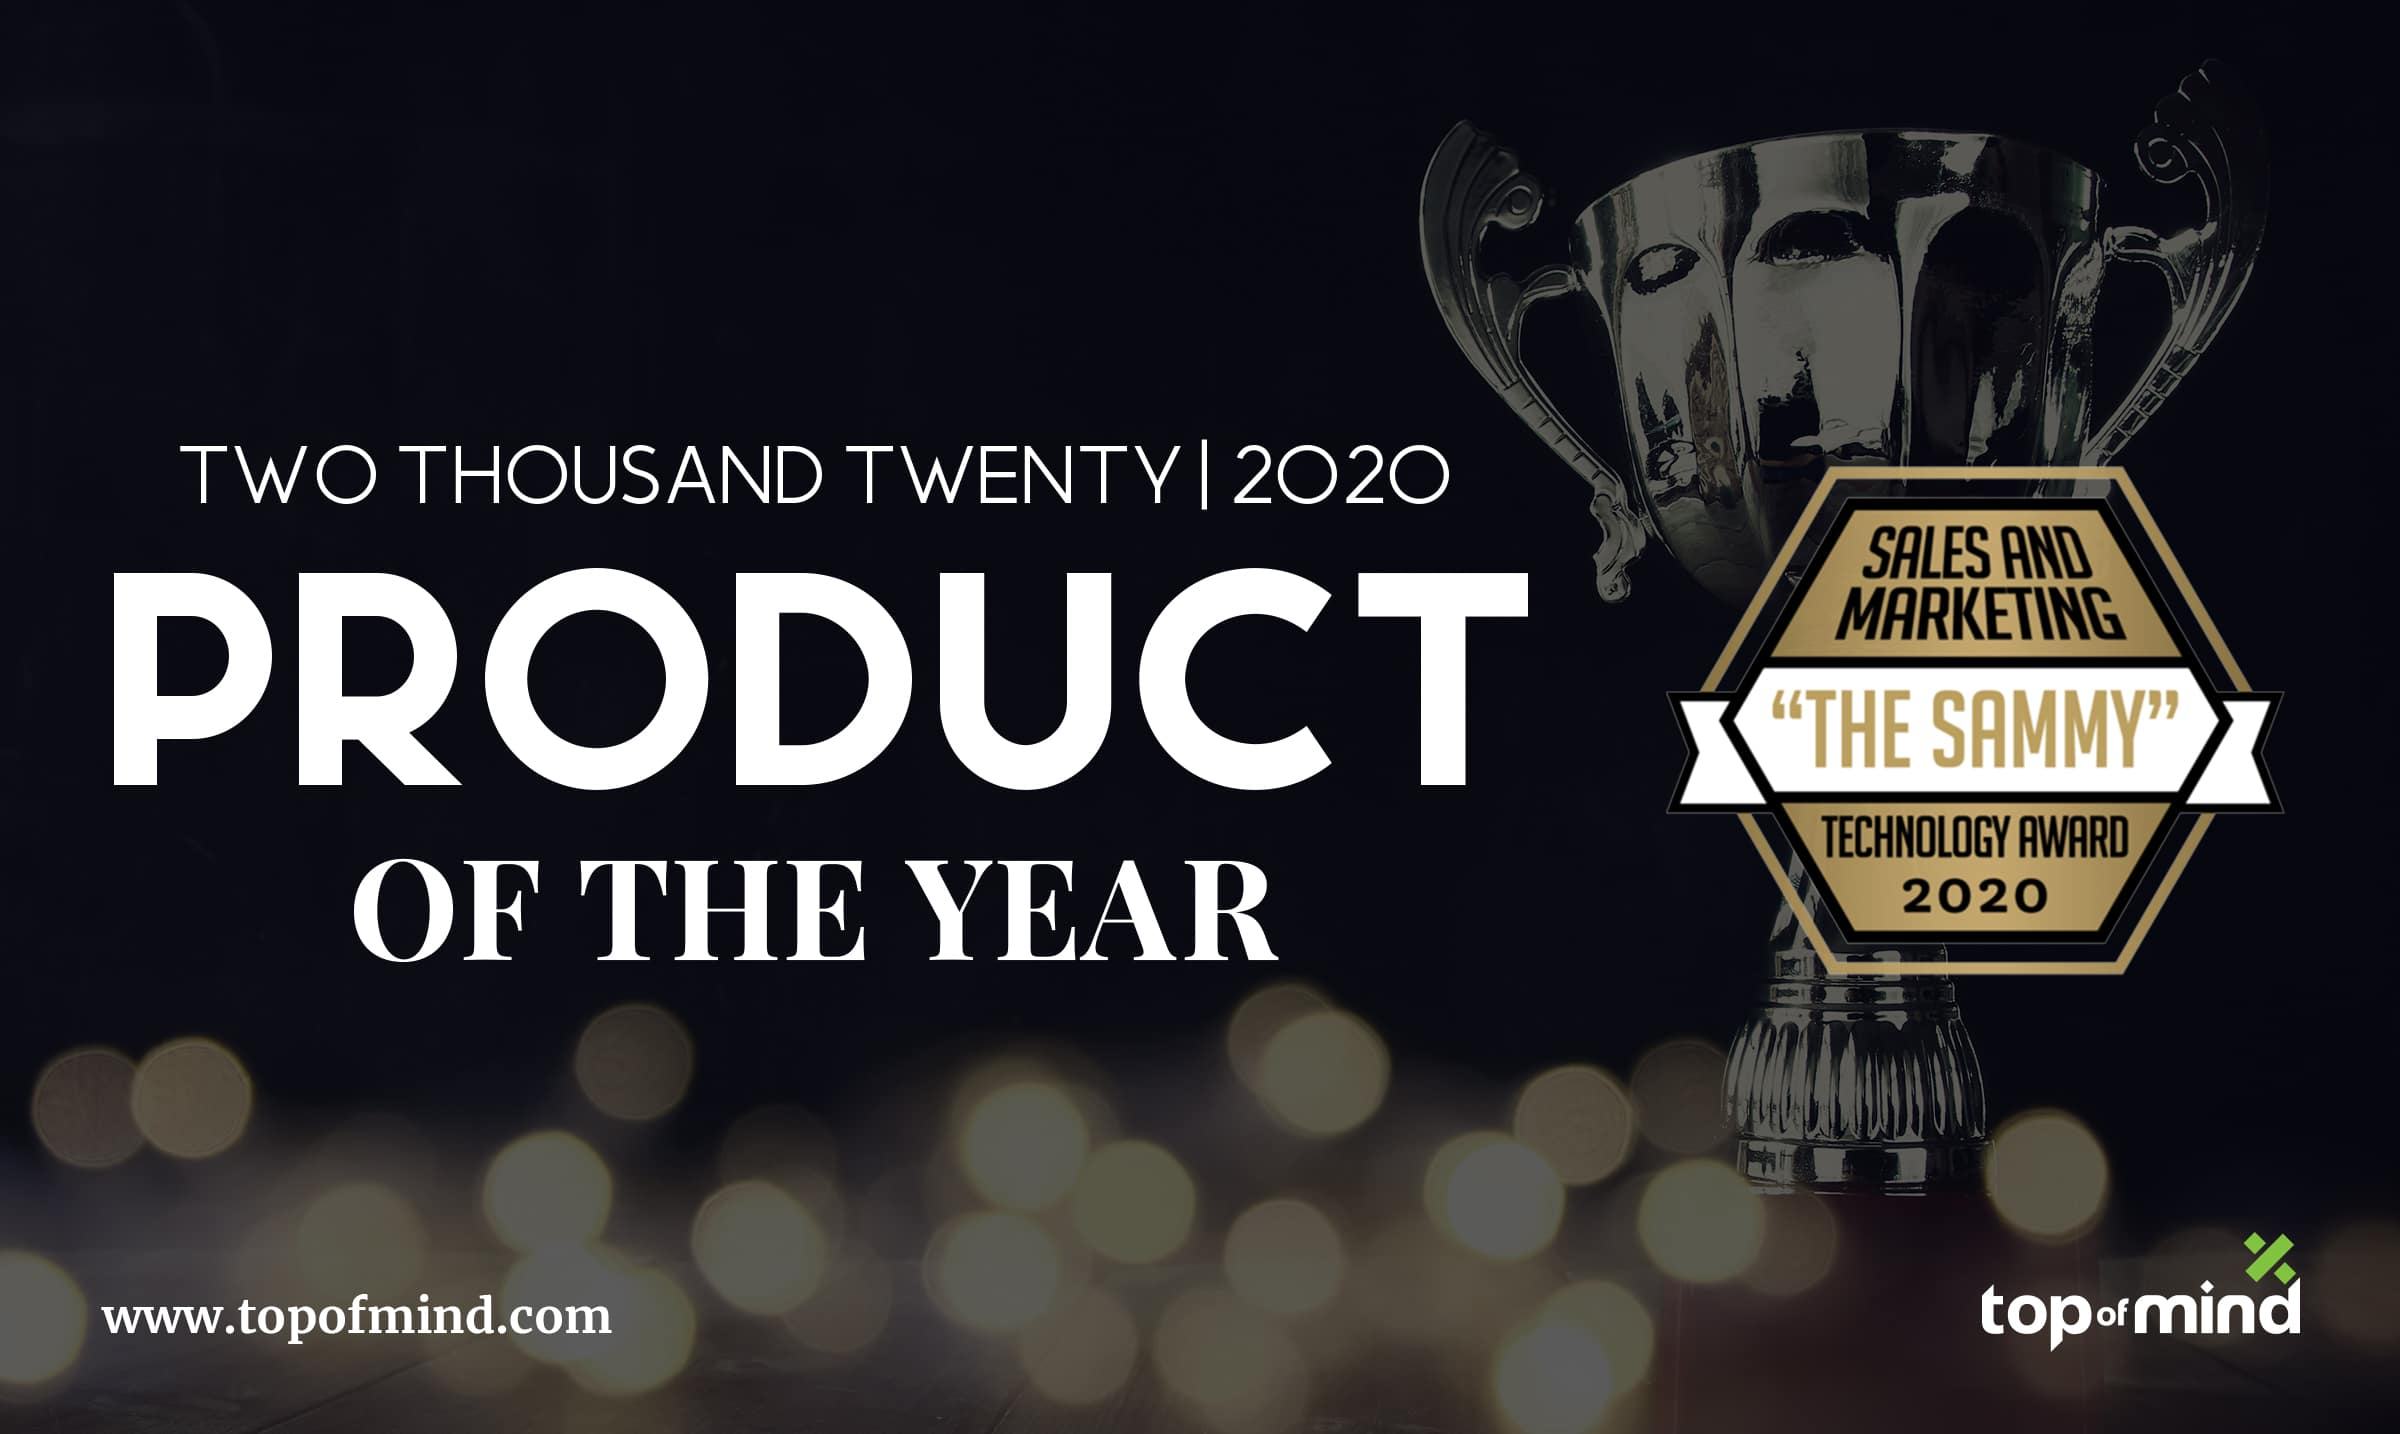 Surefire CRM wins Product of the Year